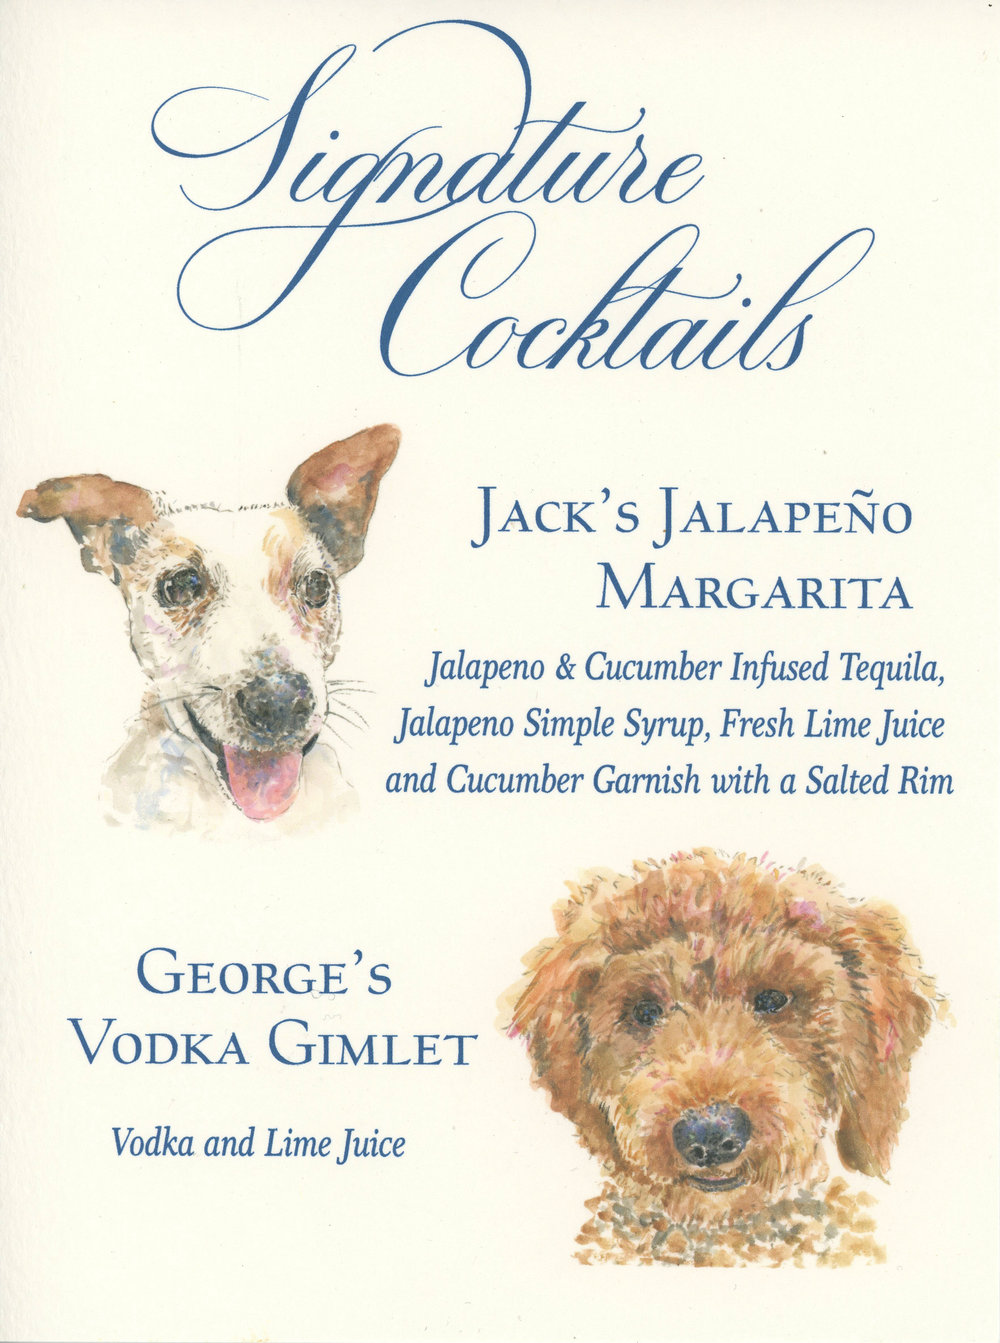 Dog Signature Cocktails.jpg